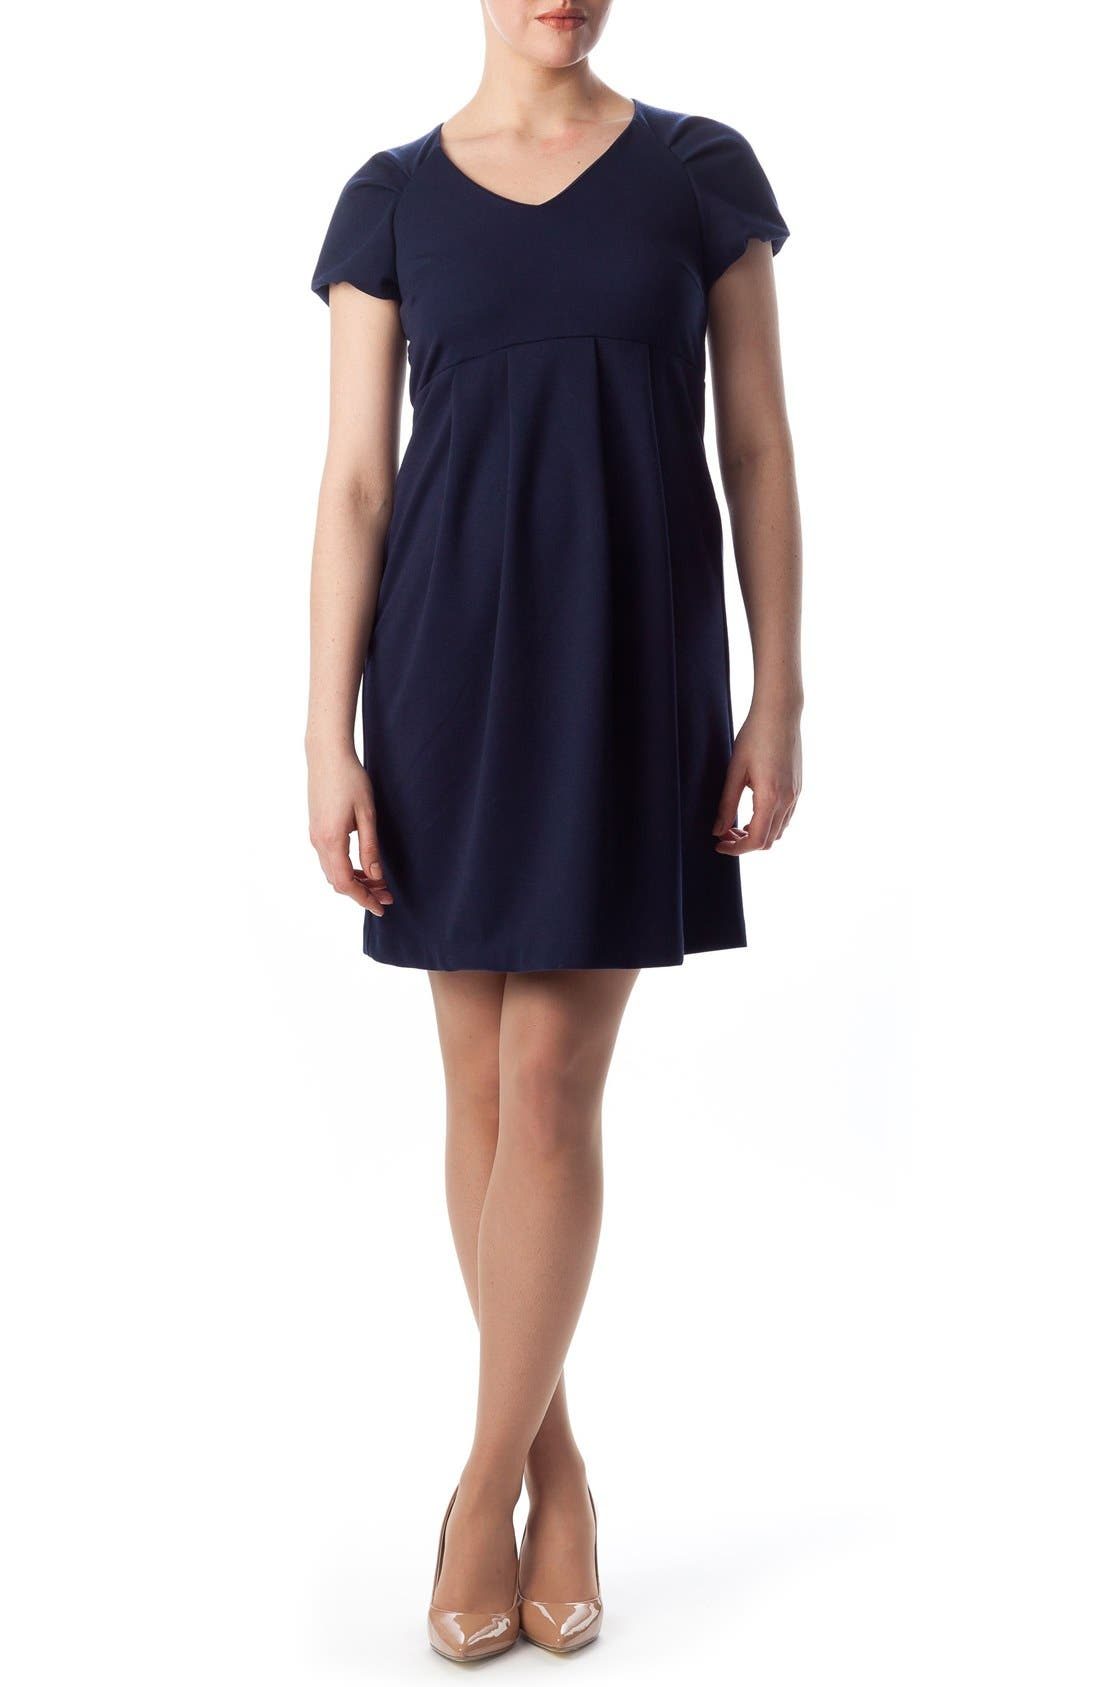 Central Park Maternity Dress,                             Main thumbnail 1, color,                             DRESS BLUES